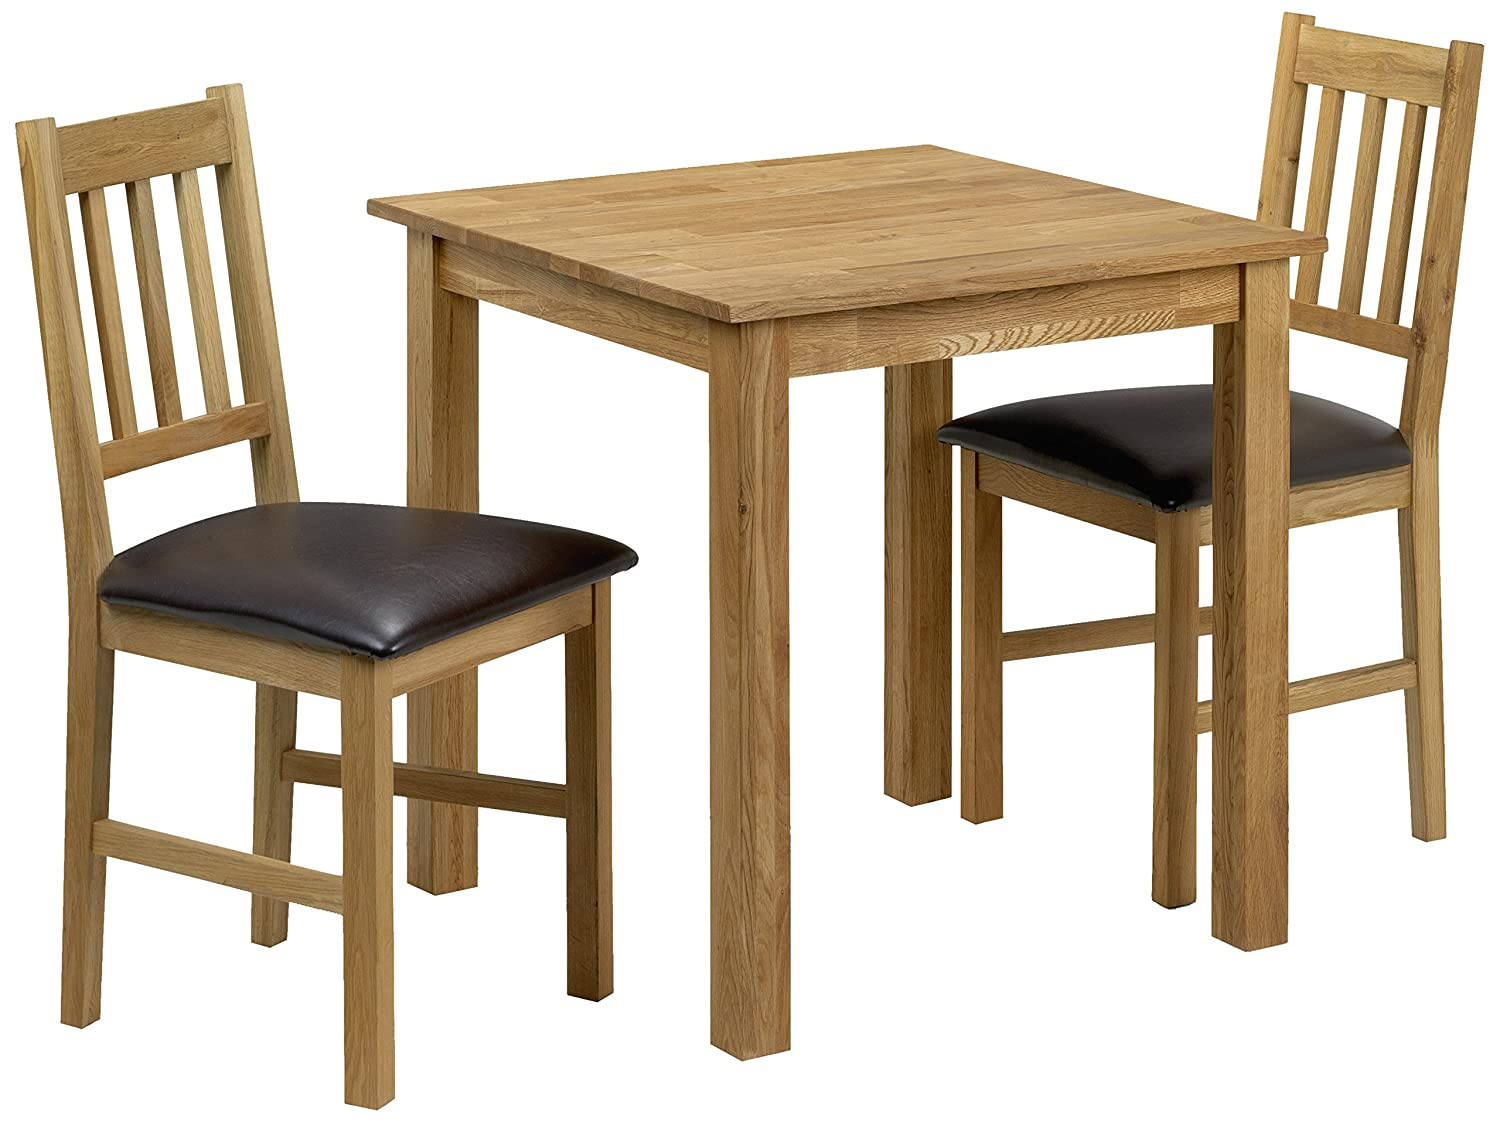 dining table with 2 chairs. julian bowen coxmoor square dining table set with 2 chairs, light oak: amazon.co.uk: kitchen \u0026 home chairs